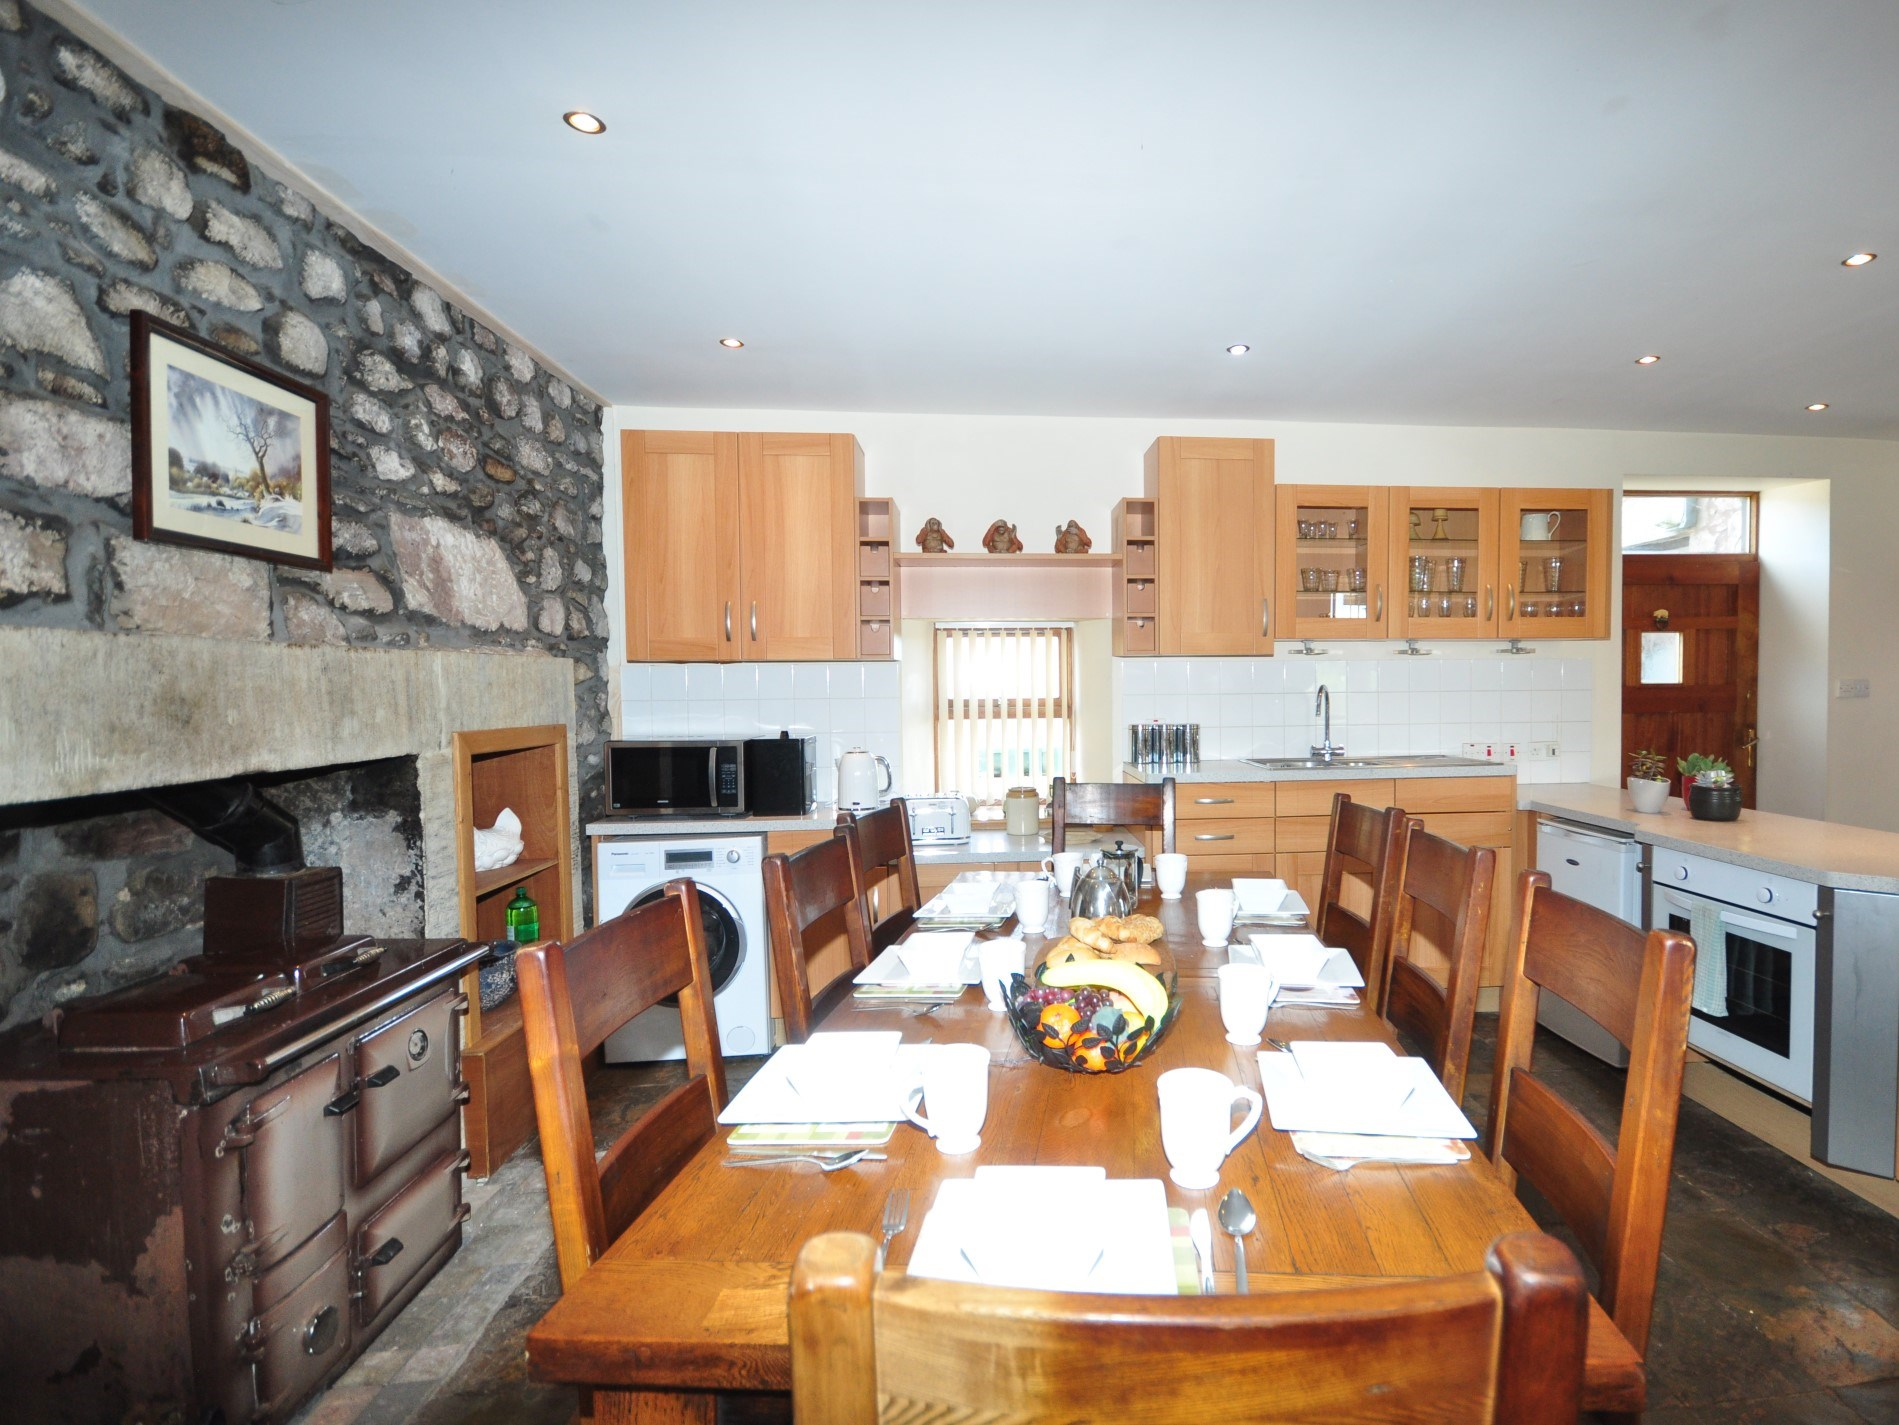 4 Bedroom Cottage in Nairn, Inverness, Loch Ness & Nairn, Highlands